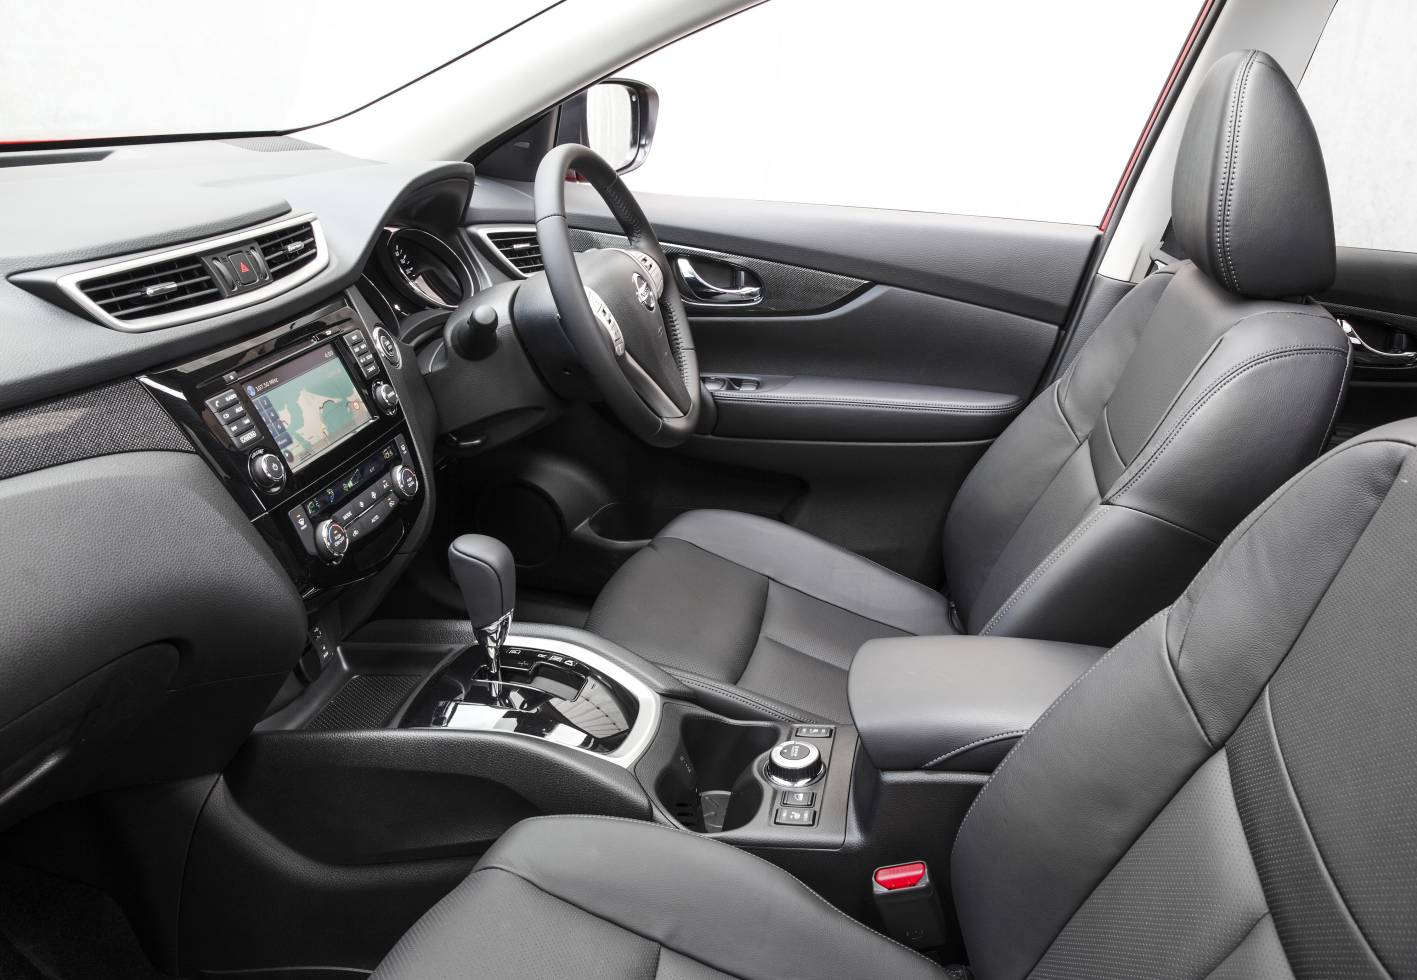 Nissan cars news x trail turbo diesel on sale from 35 380 for Nissan x trail interior